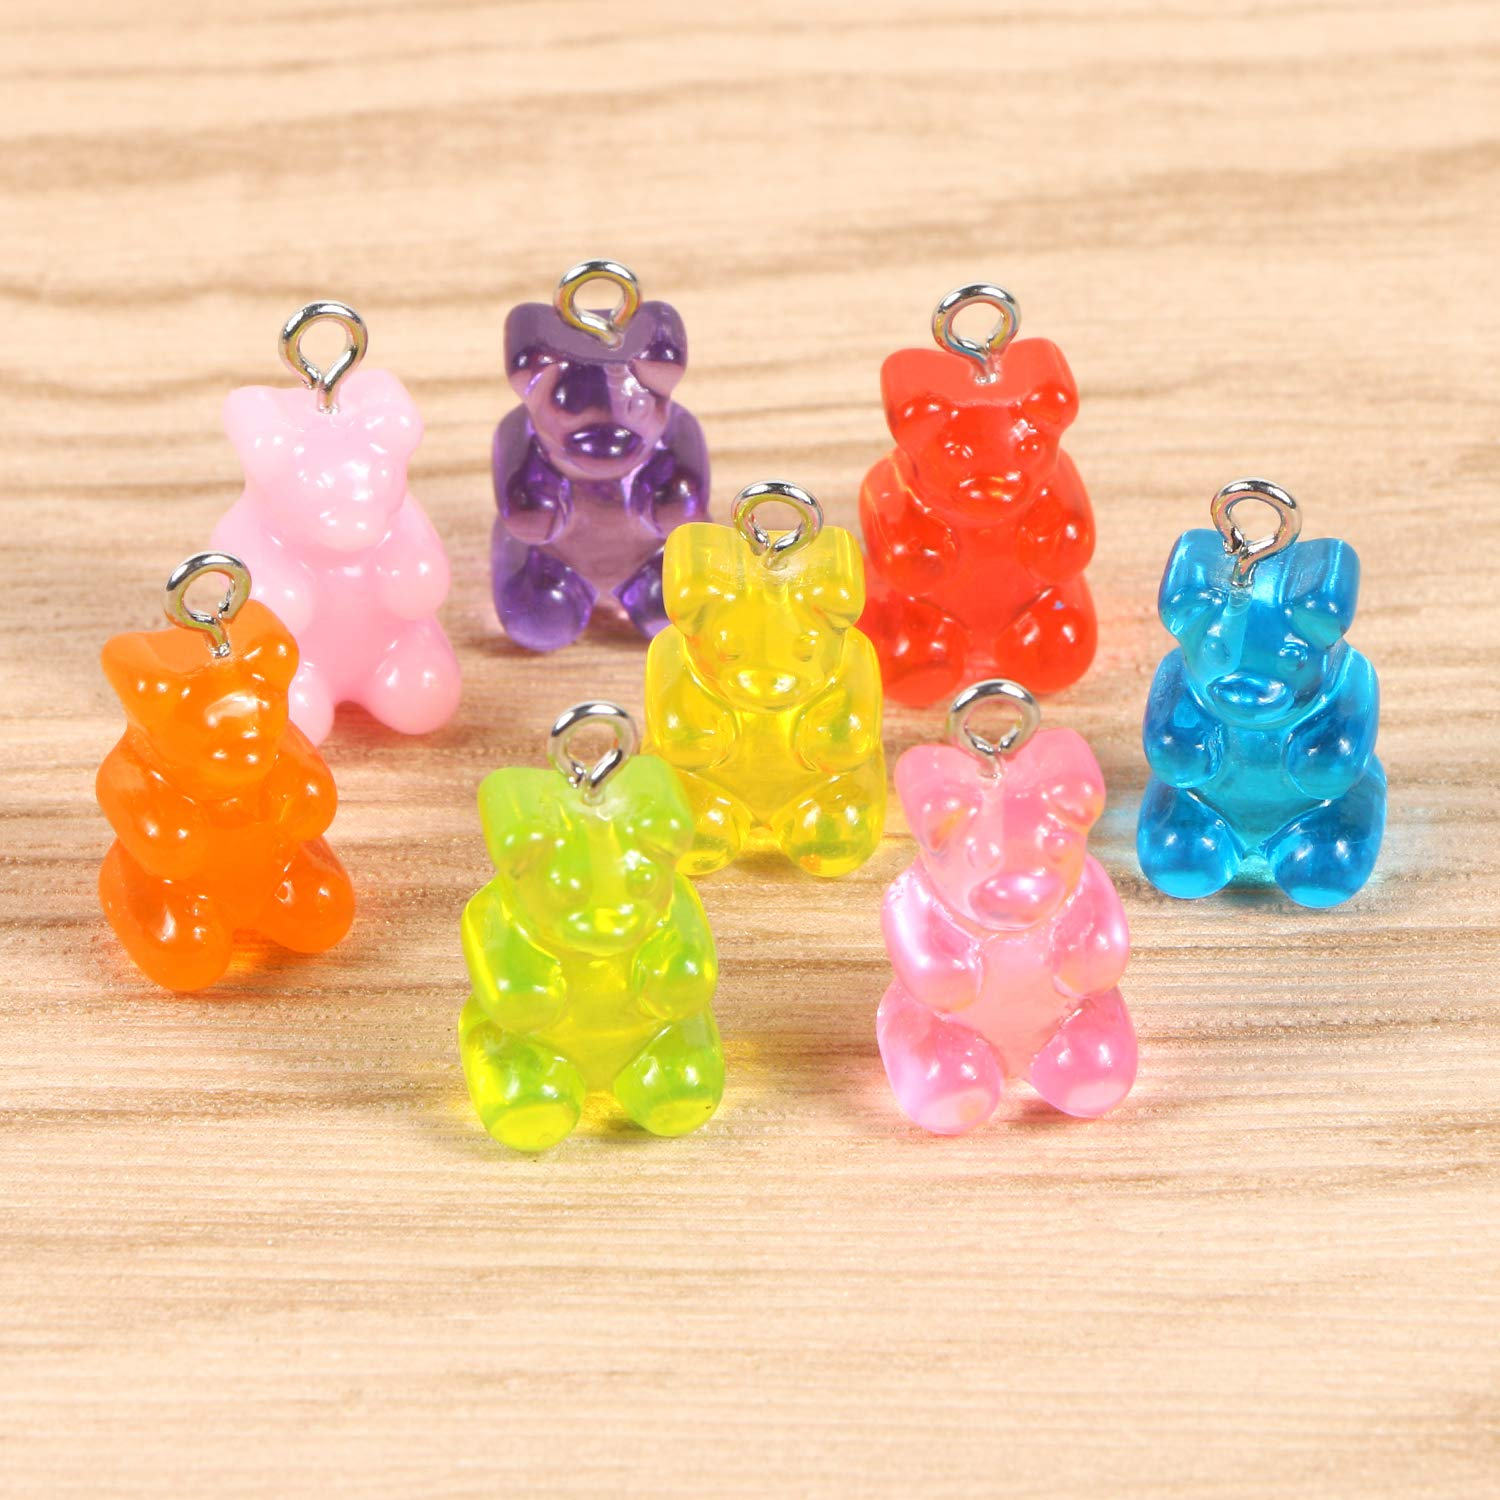 BENBO 40Pcs 8 Colors Cartoon Bear Keychain Pendants Necklace Bear Candy Charm for DIY Jewelry Making Crafting Resin Gummy Bear Pendant